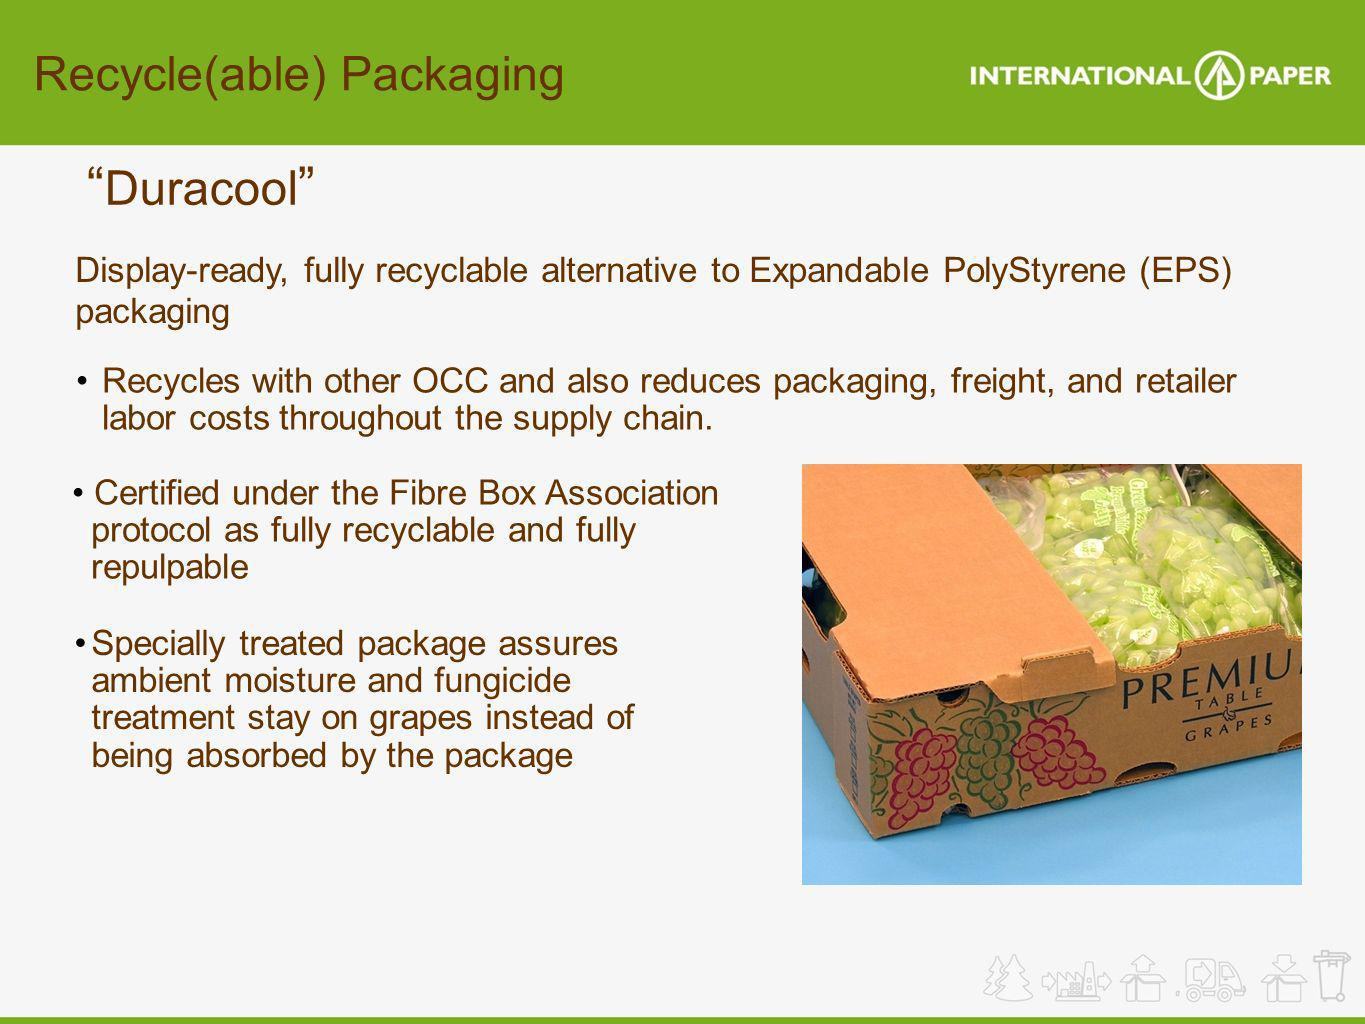 Duracool Recycle(able) Packaging